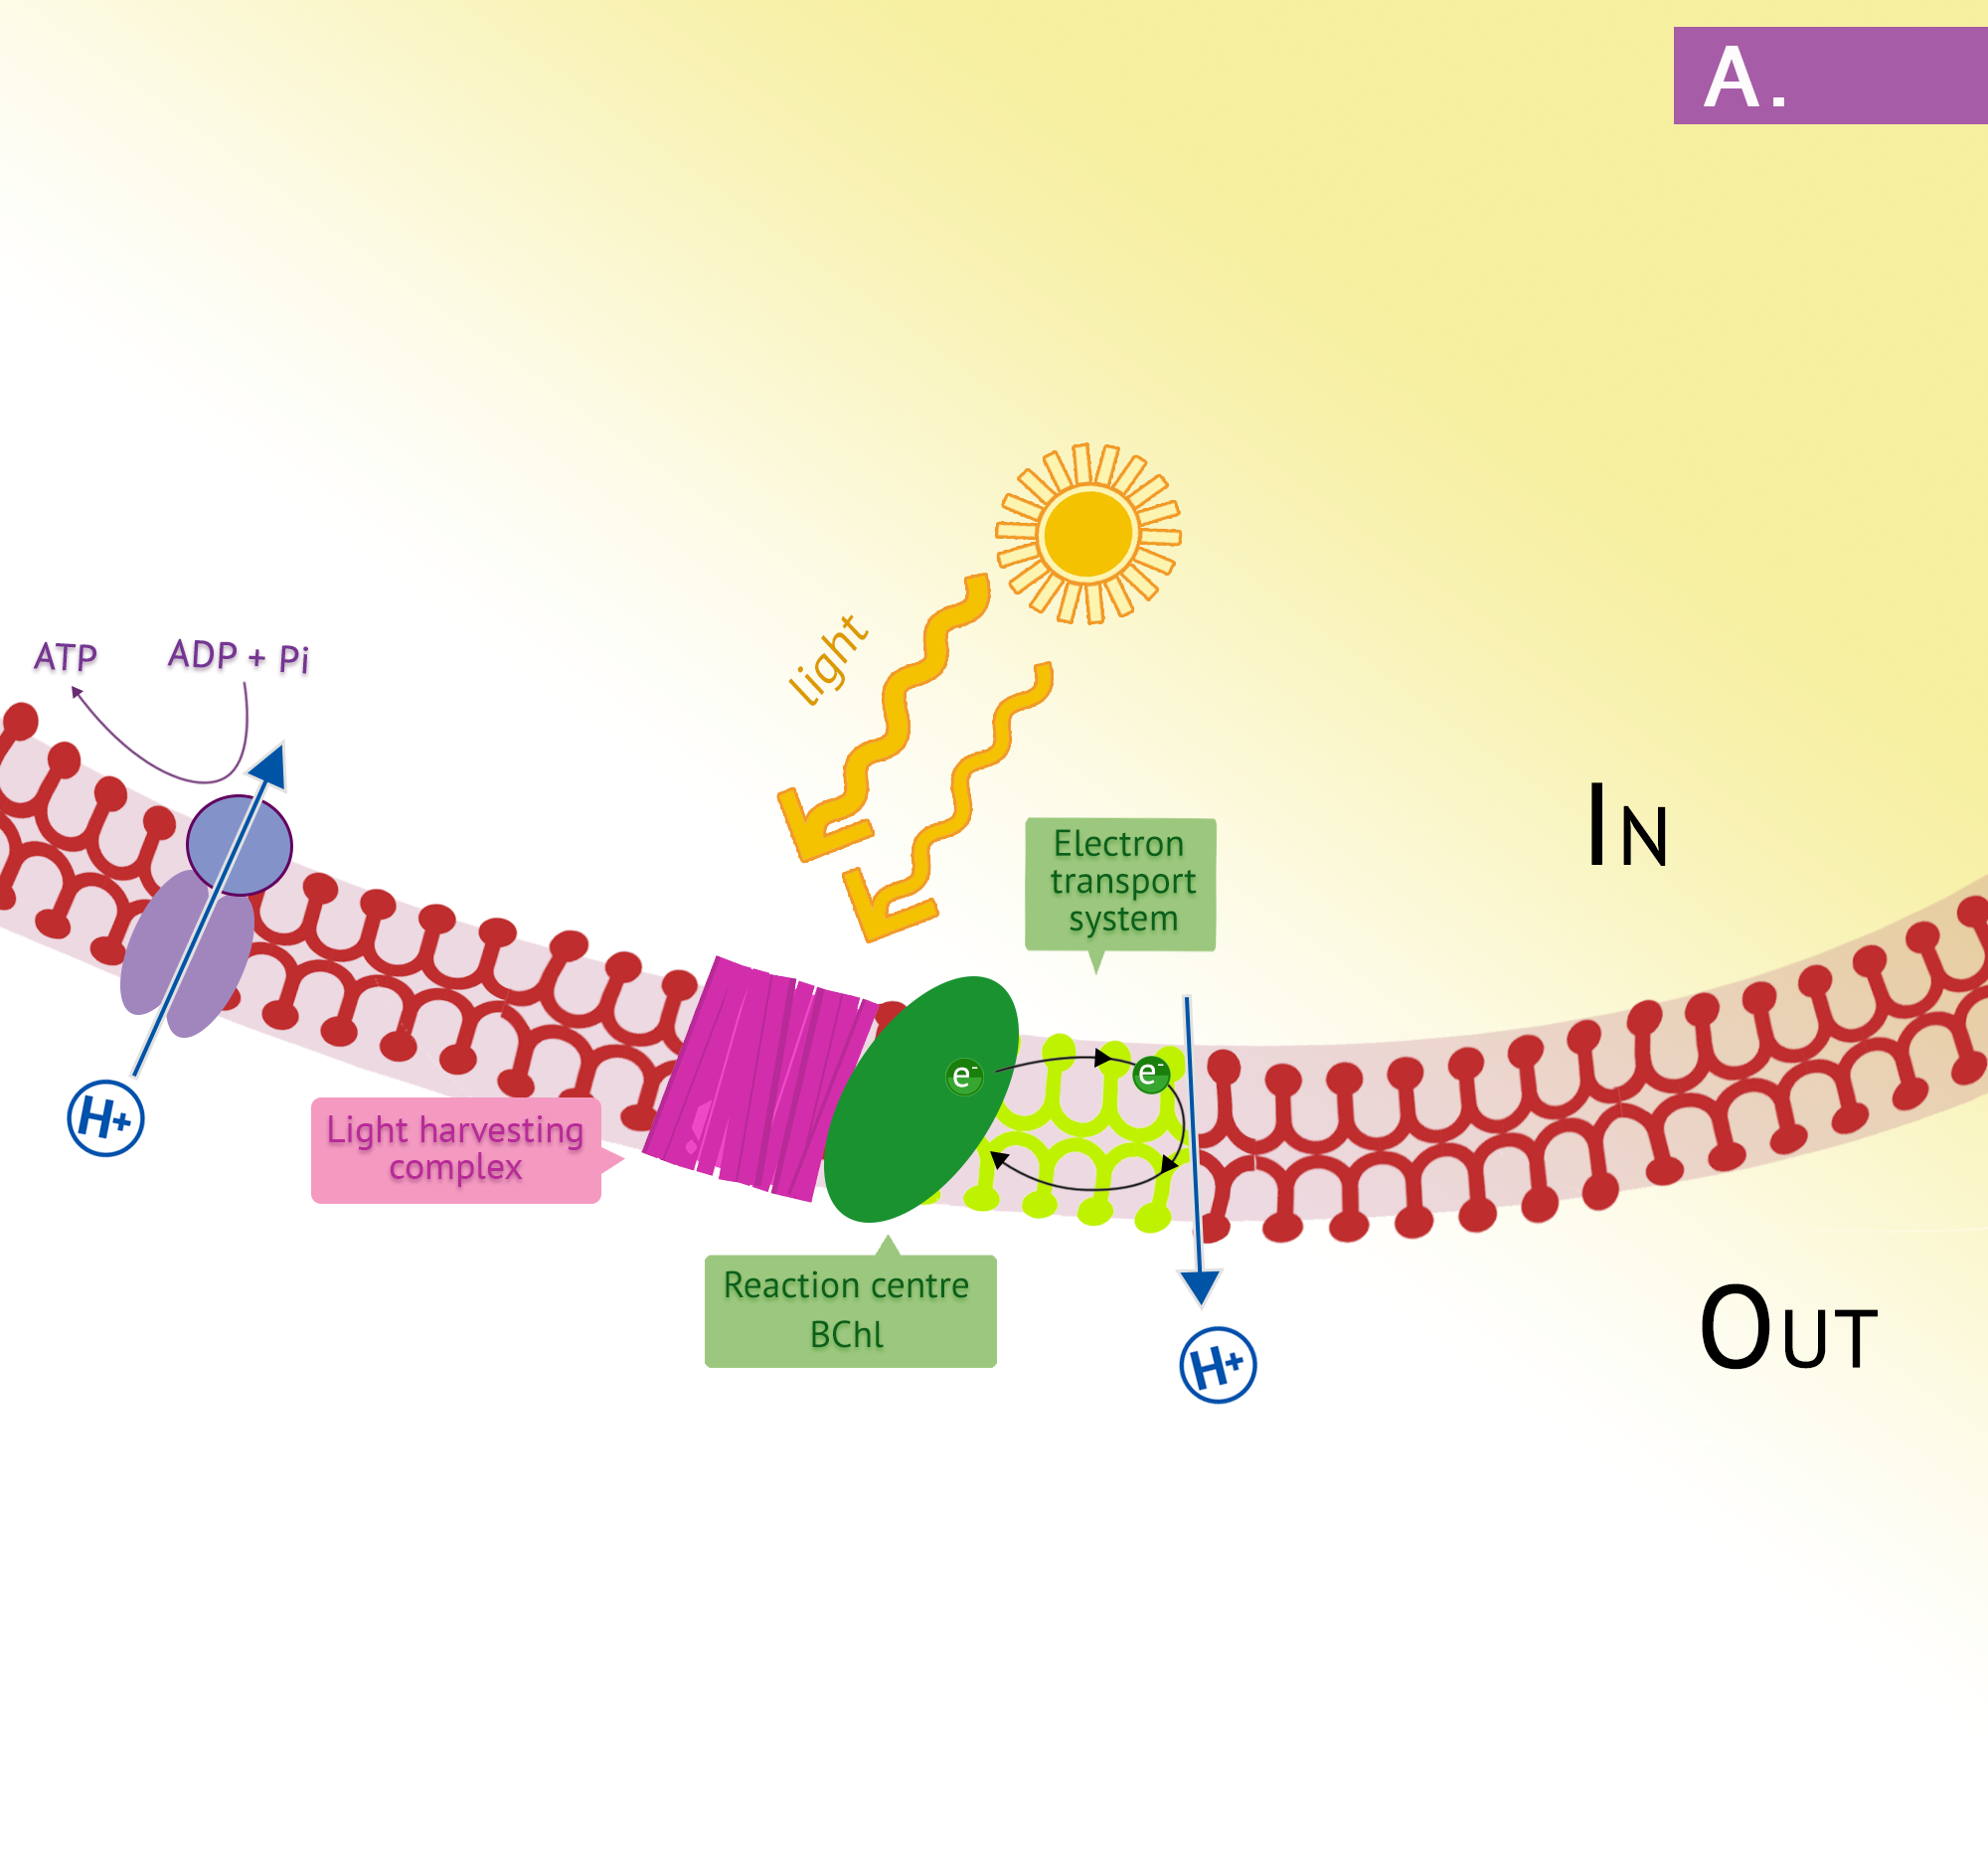 Panel a depicts the purple electron transport chain. Light hits the light-harvesting complex in the plasma membrane, leading to photoionization. Electrons cycle through the chains then back to the reaction centre bacteriochlorophyll, generating PMF.